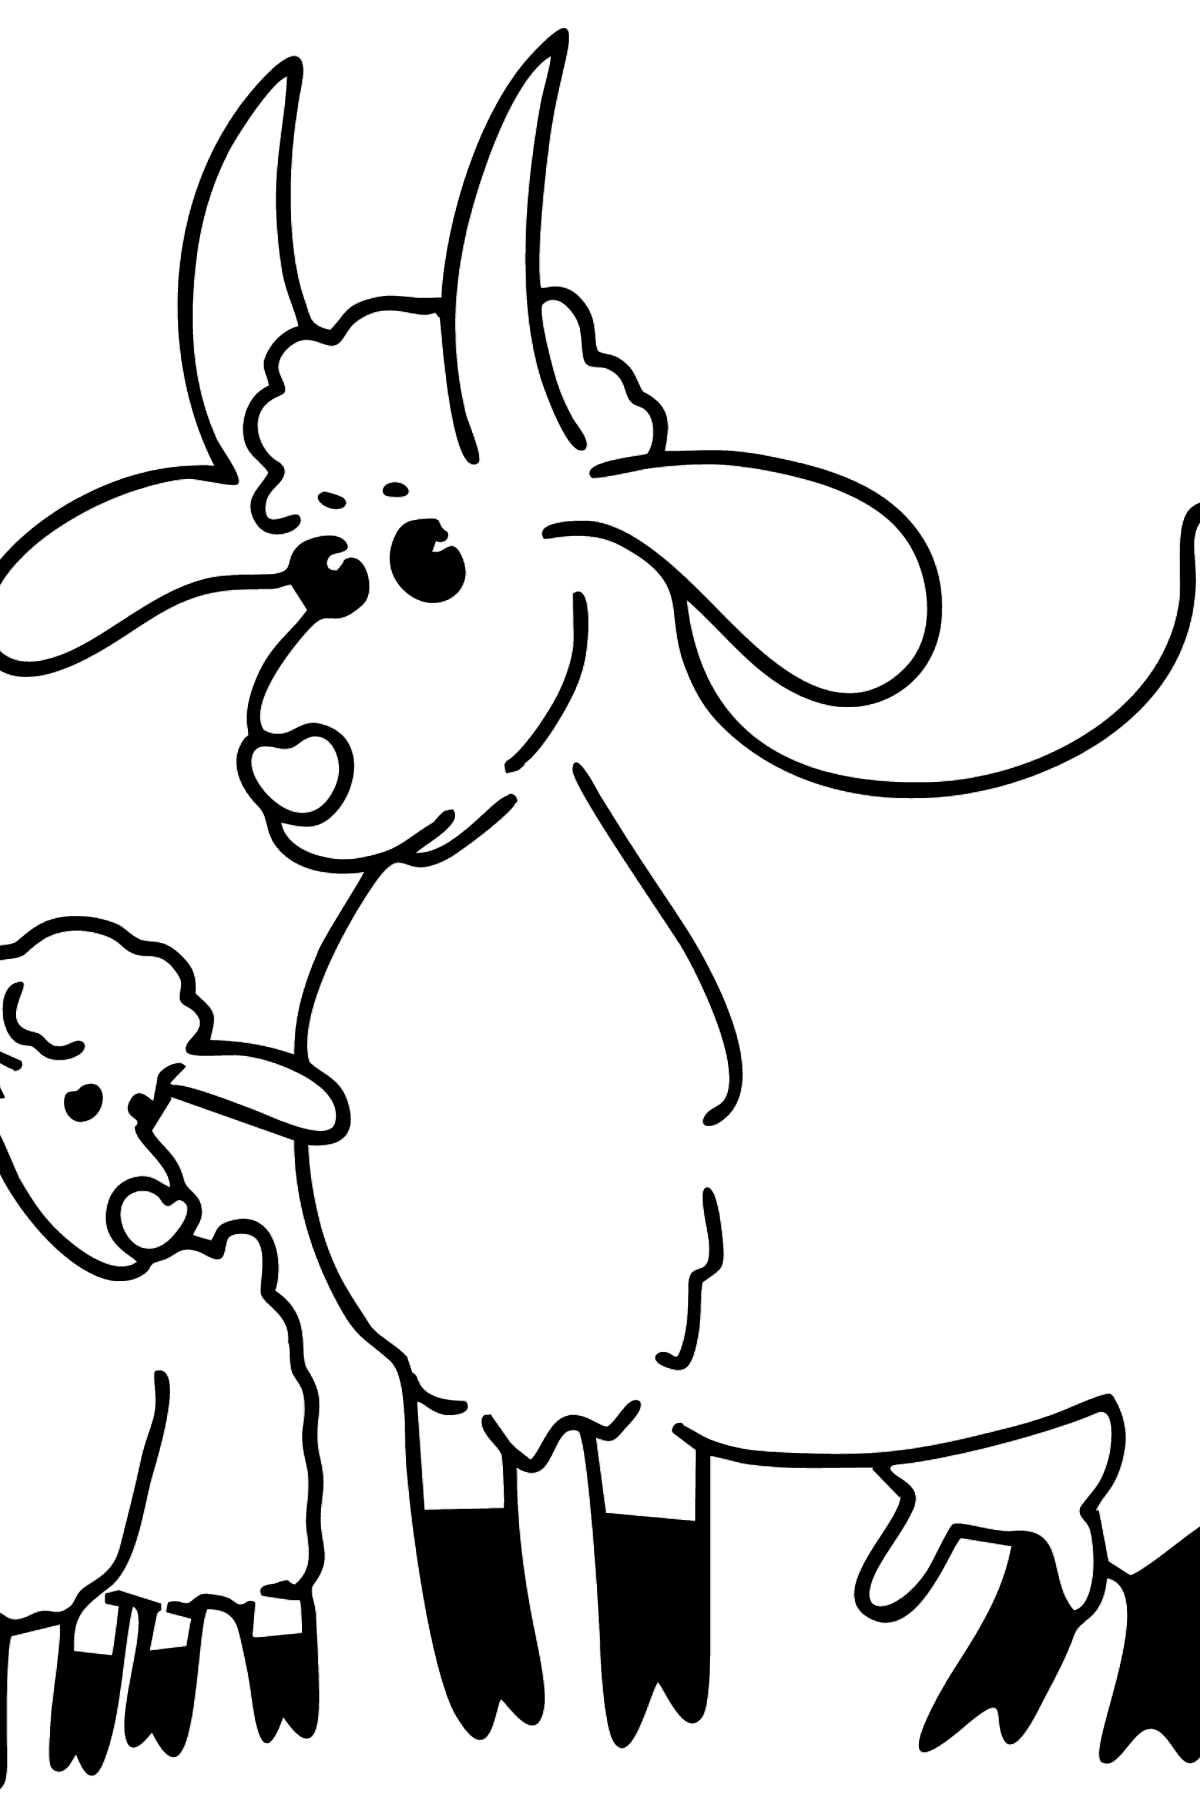 Goat and Kid coloring page - Coloring Pages for Kids